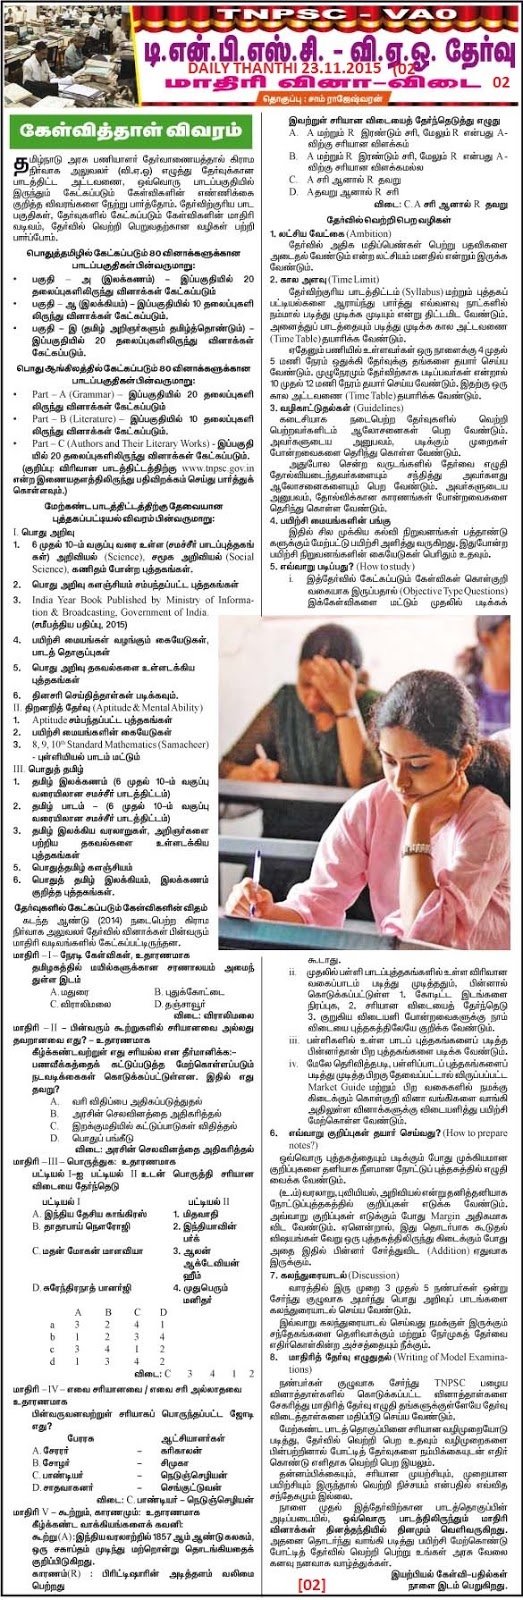 tamil cinema quiz questions and answers pdf